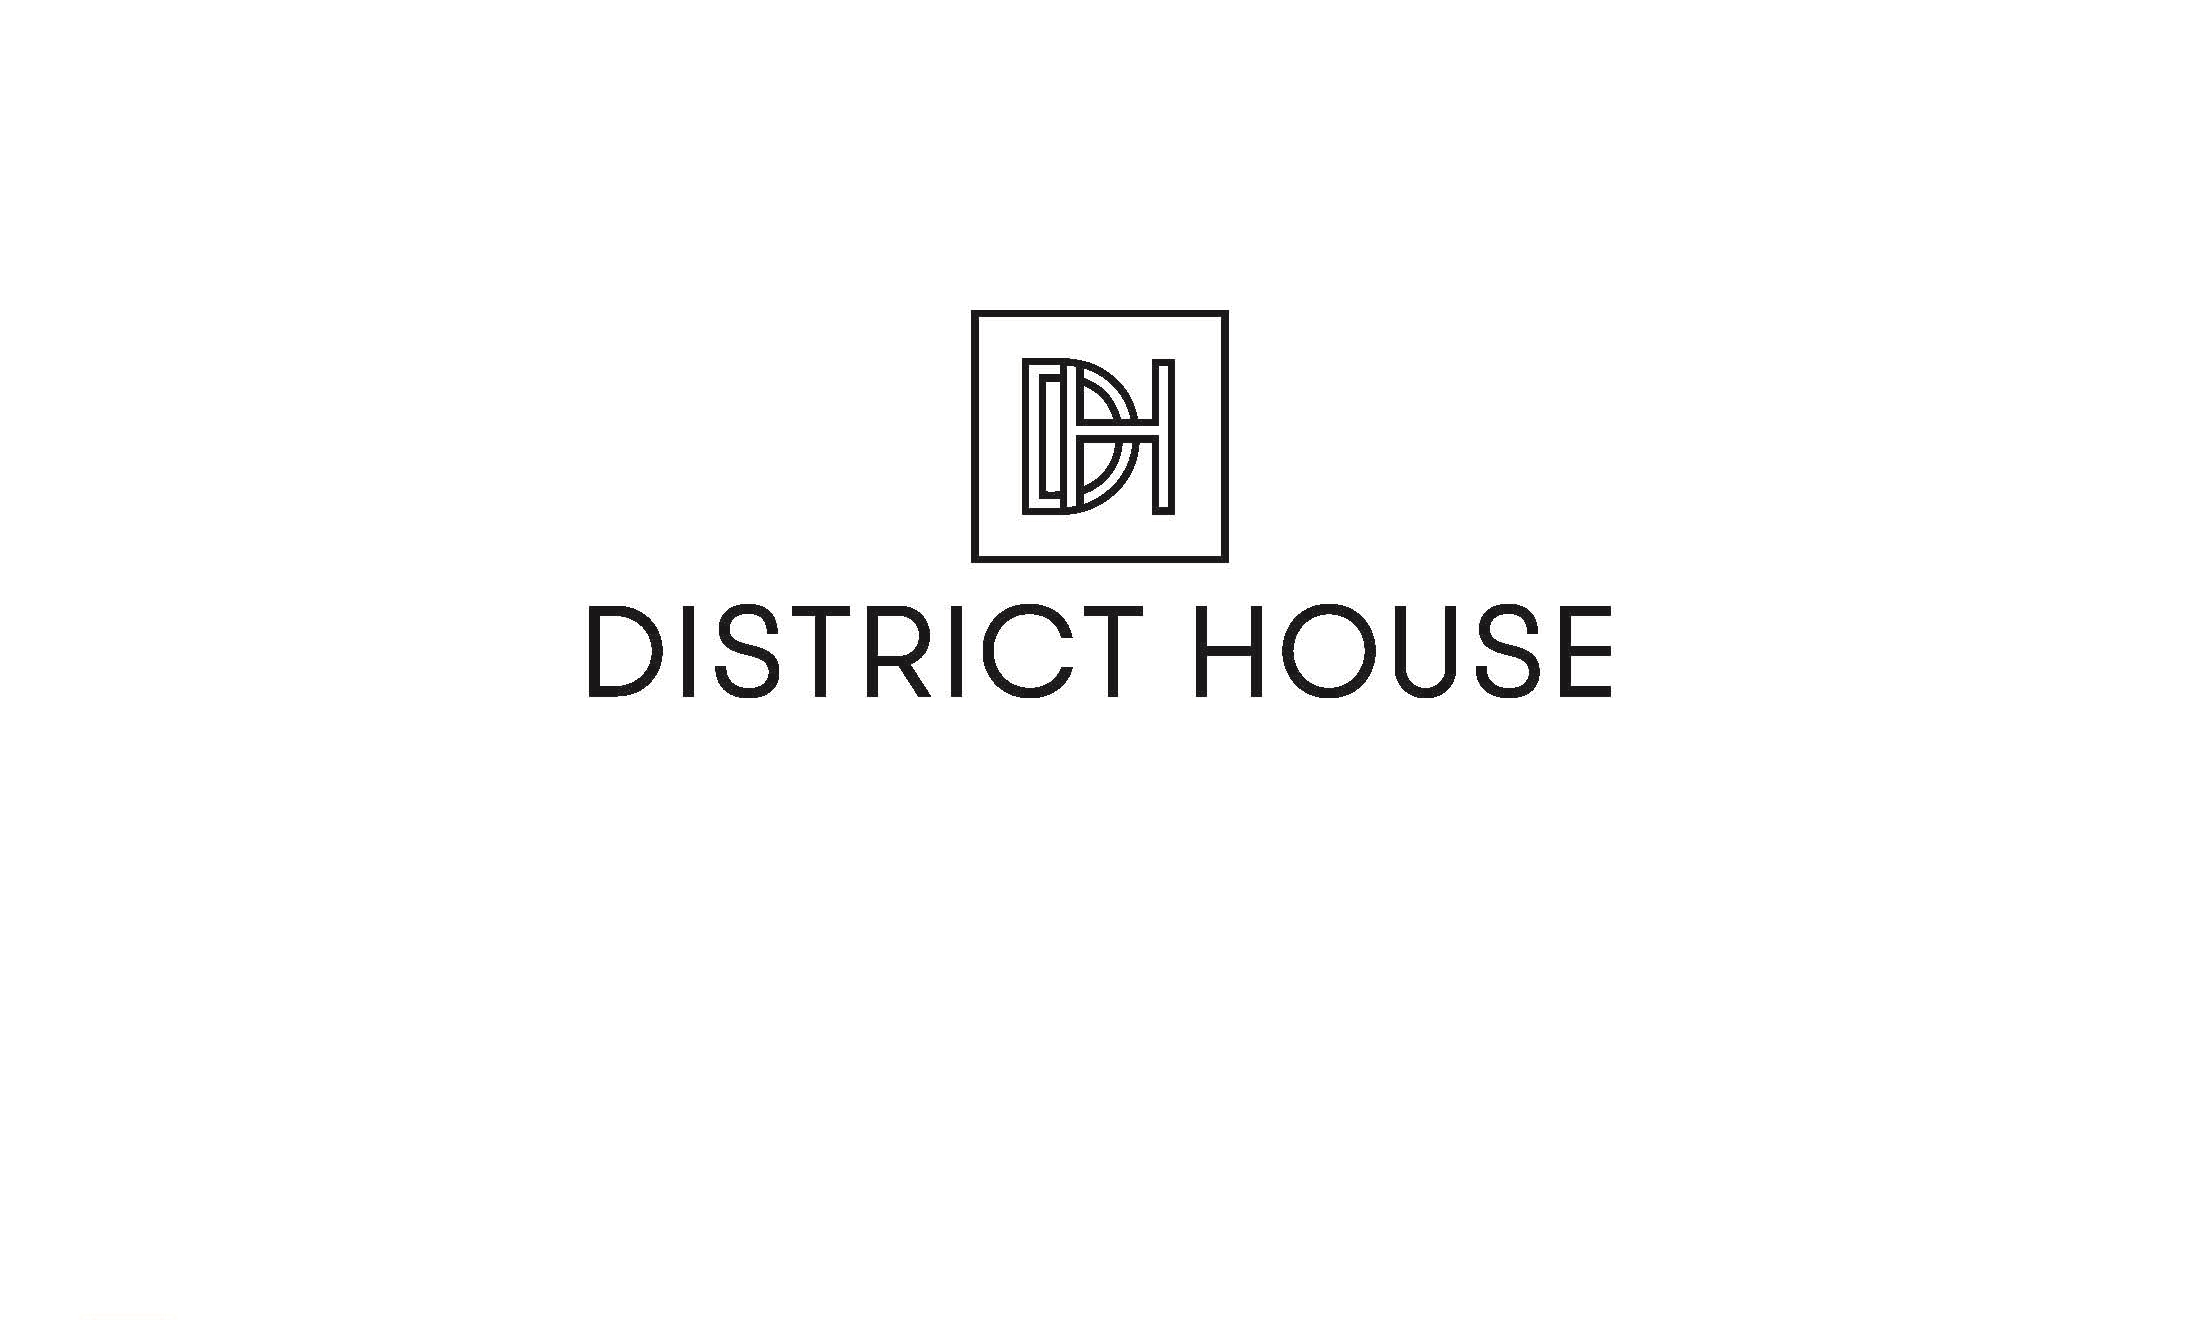 District House_Identity_Guide_031716_Page_02.jpg